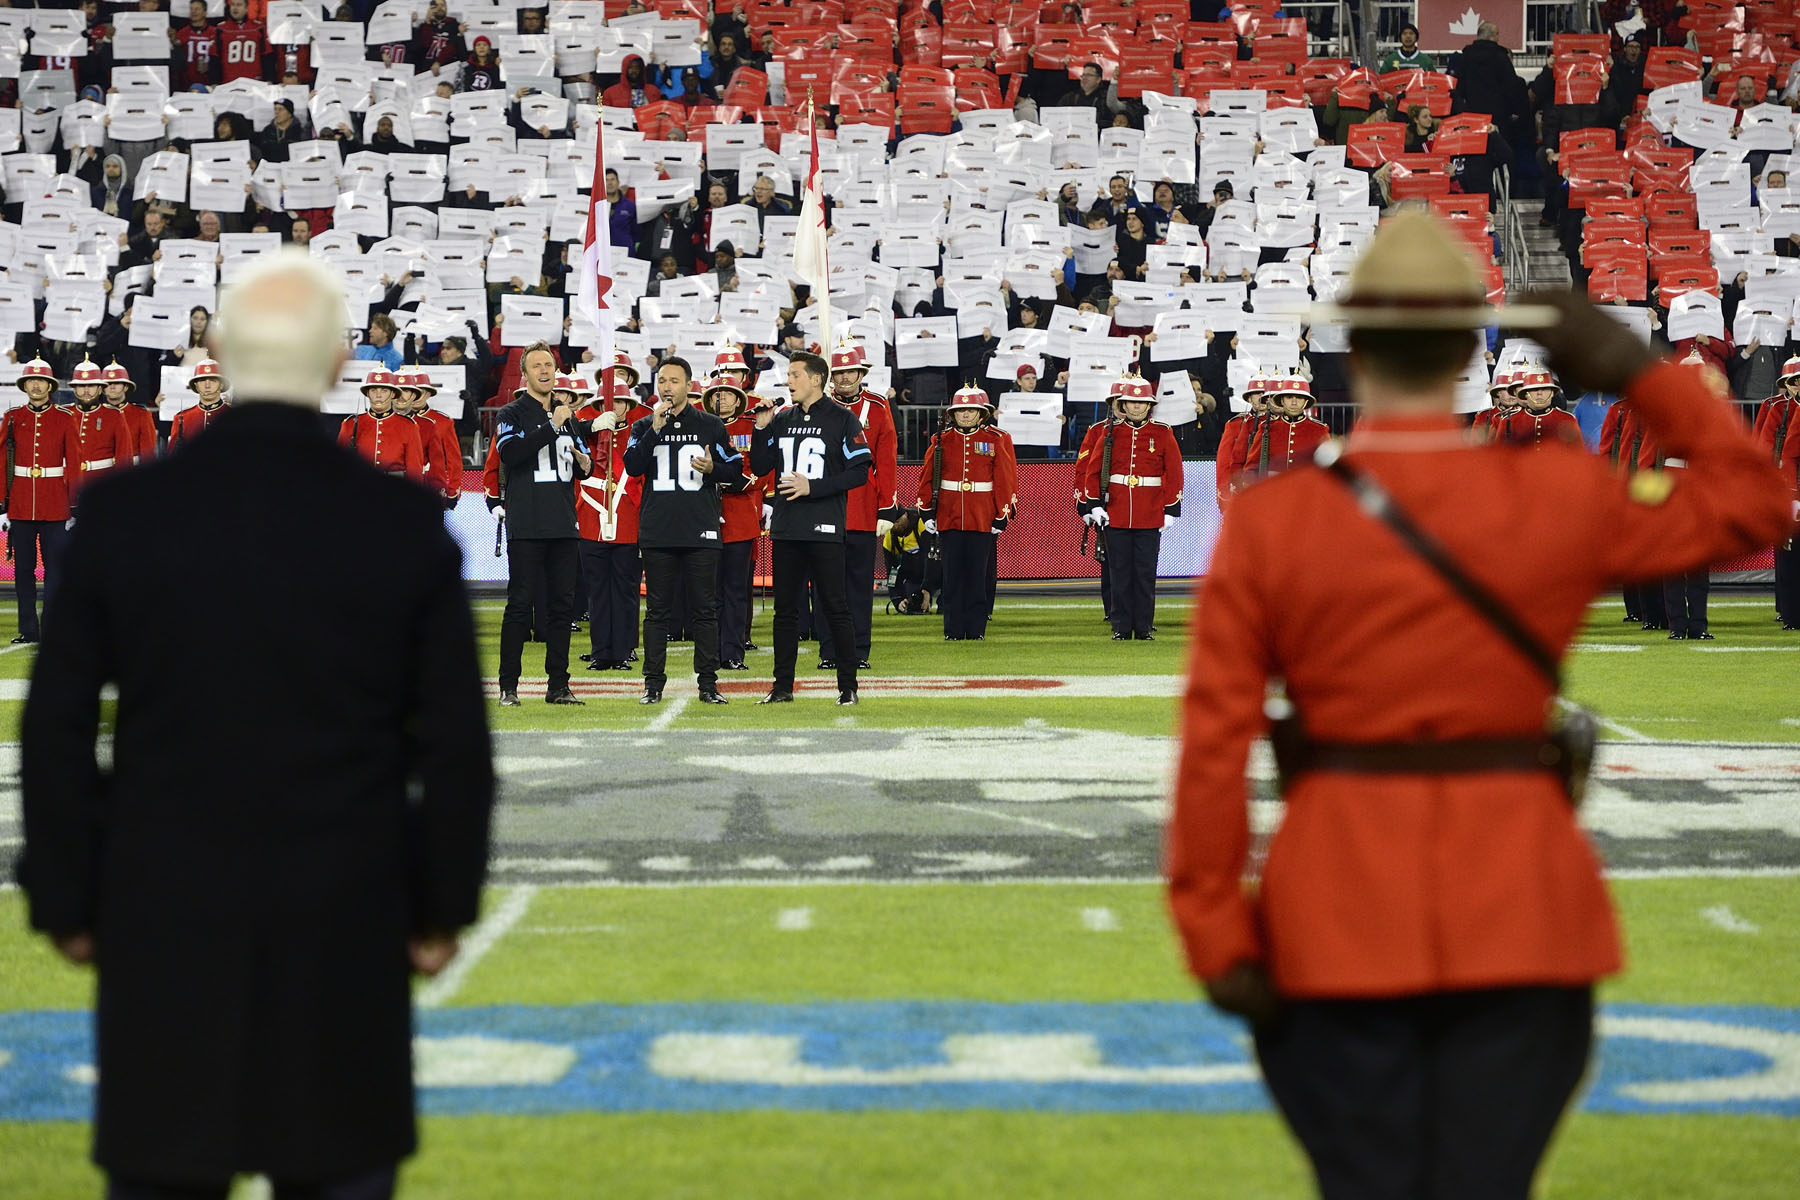 The Canadian opera group The Tenors sang the national anthem at the Grey Cup game.